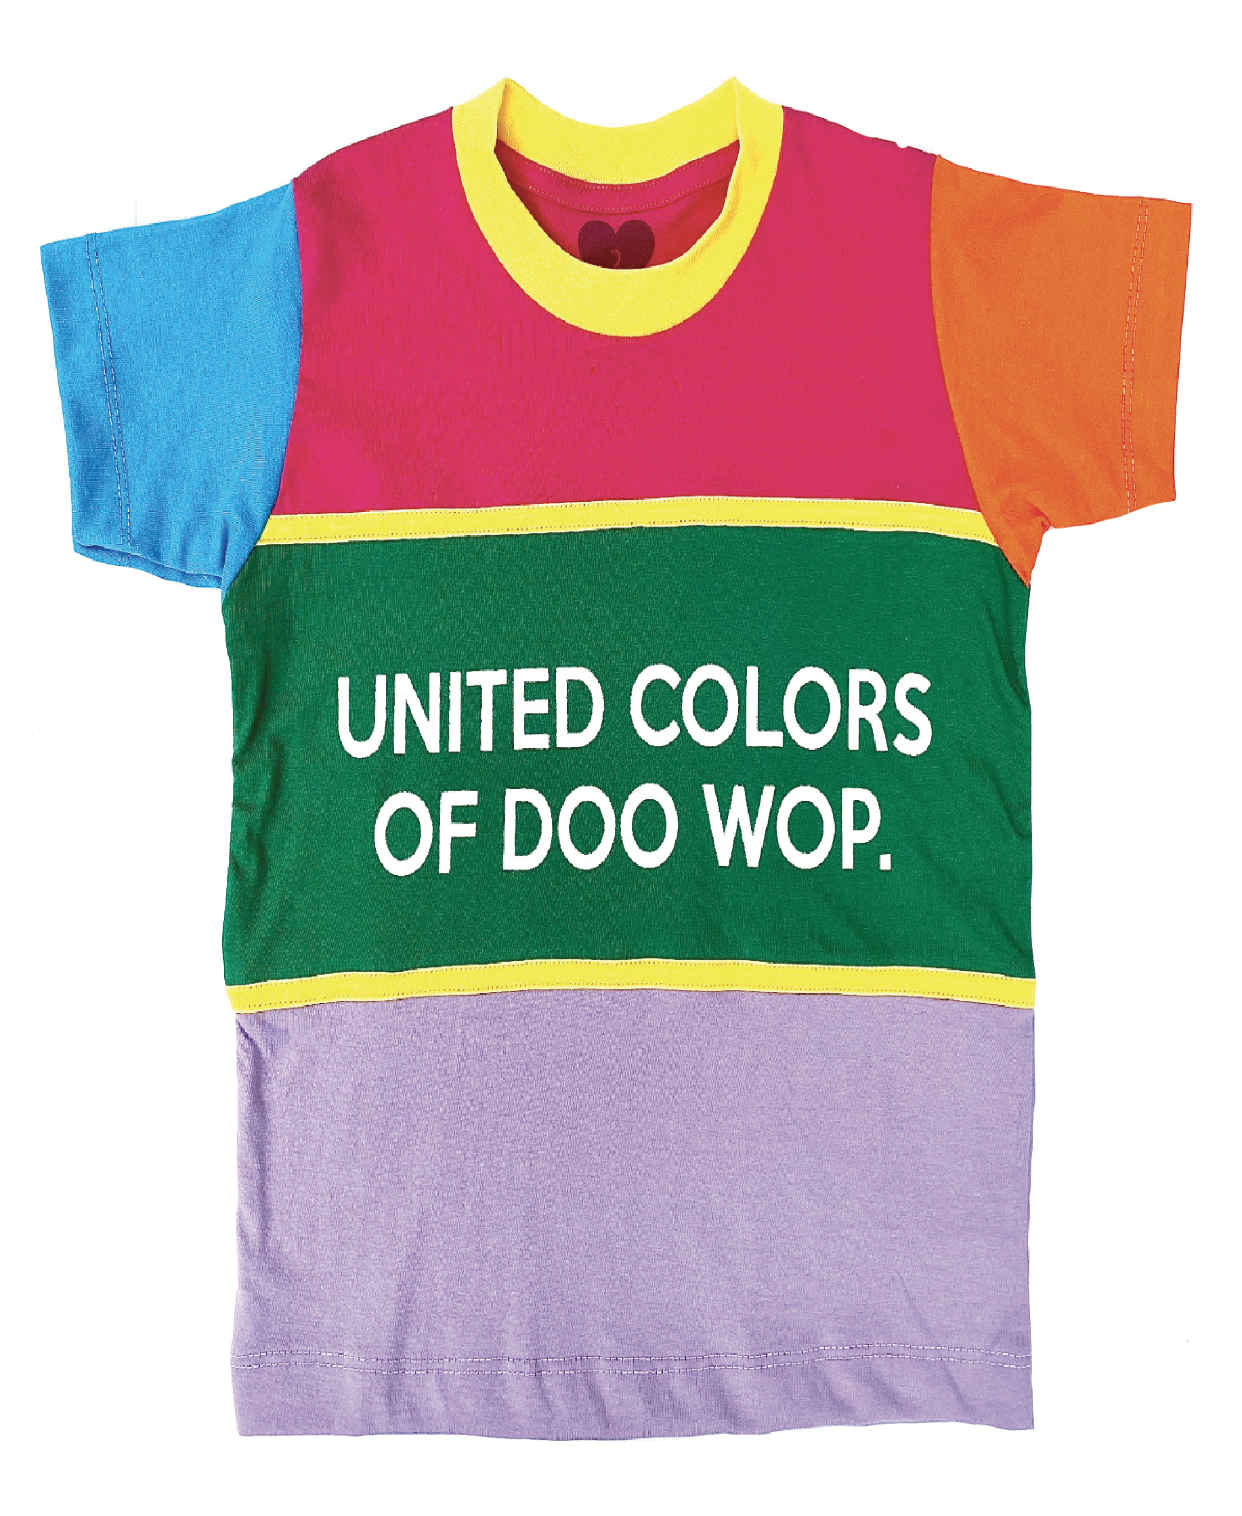 Doo Wop United Colours of Doo Wop Kids Tee